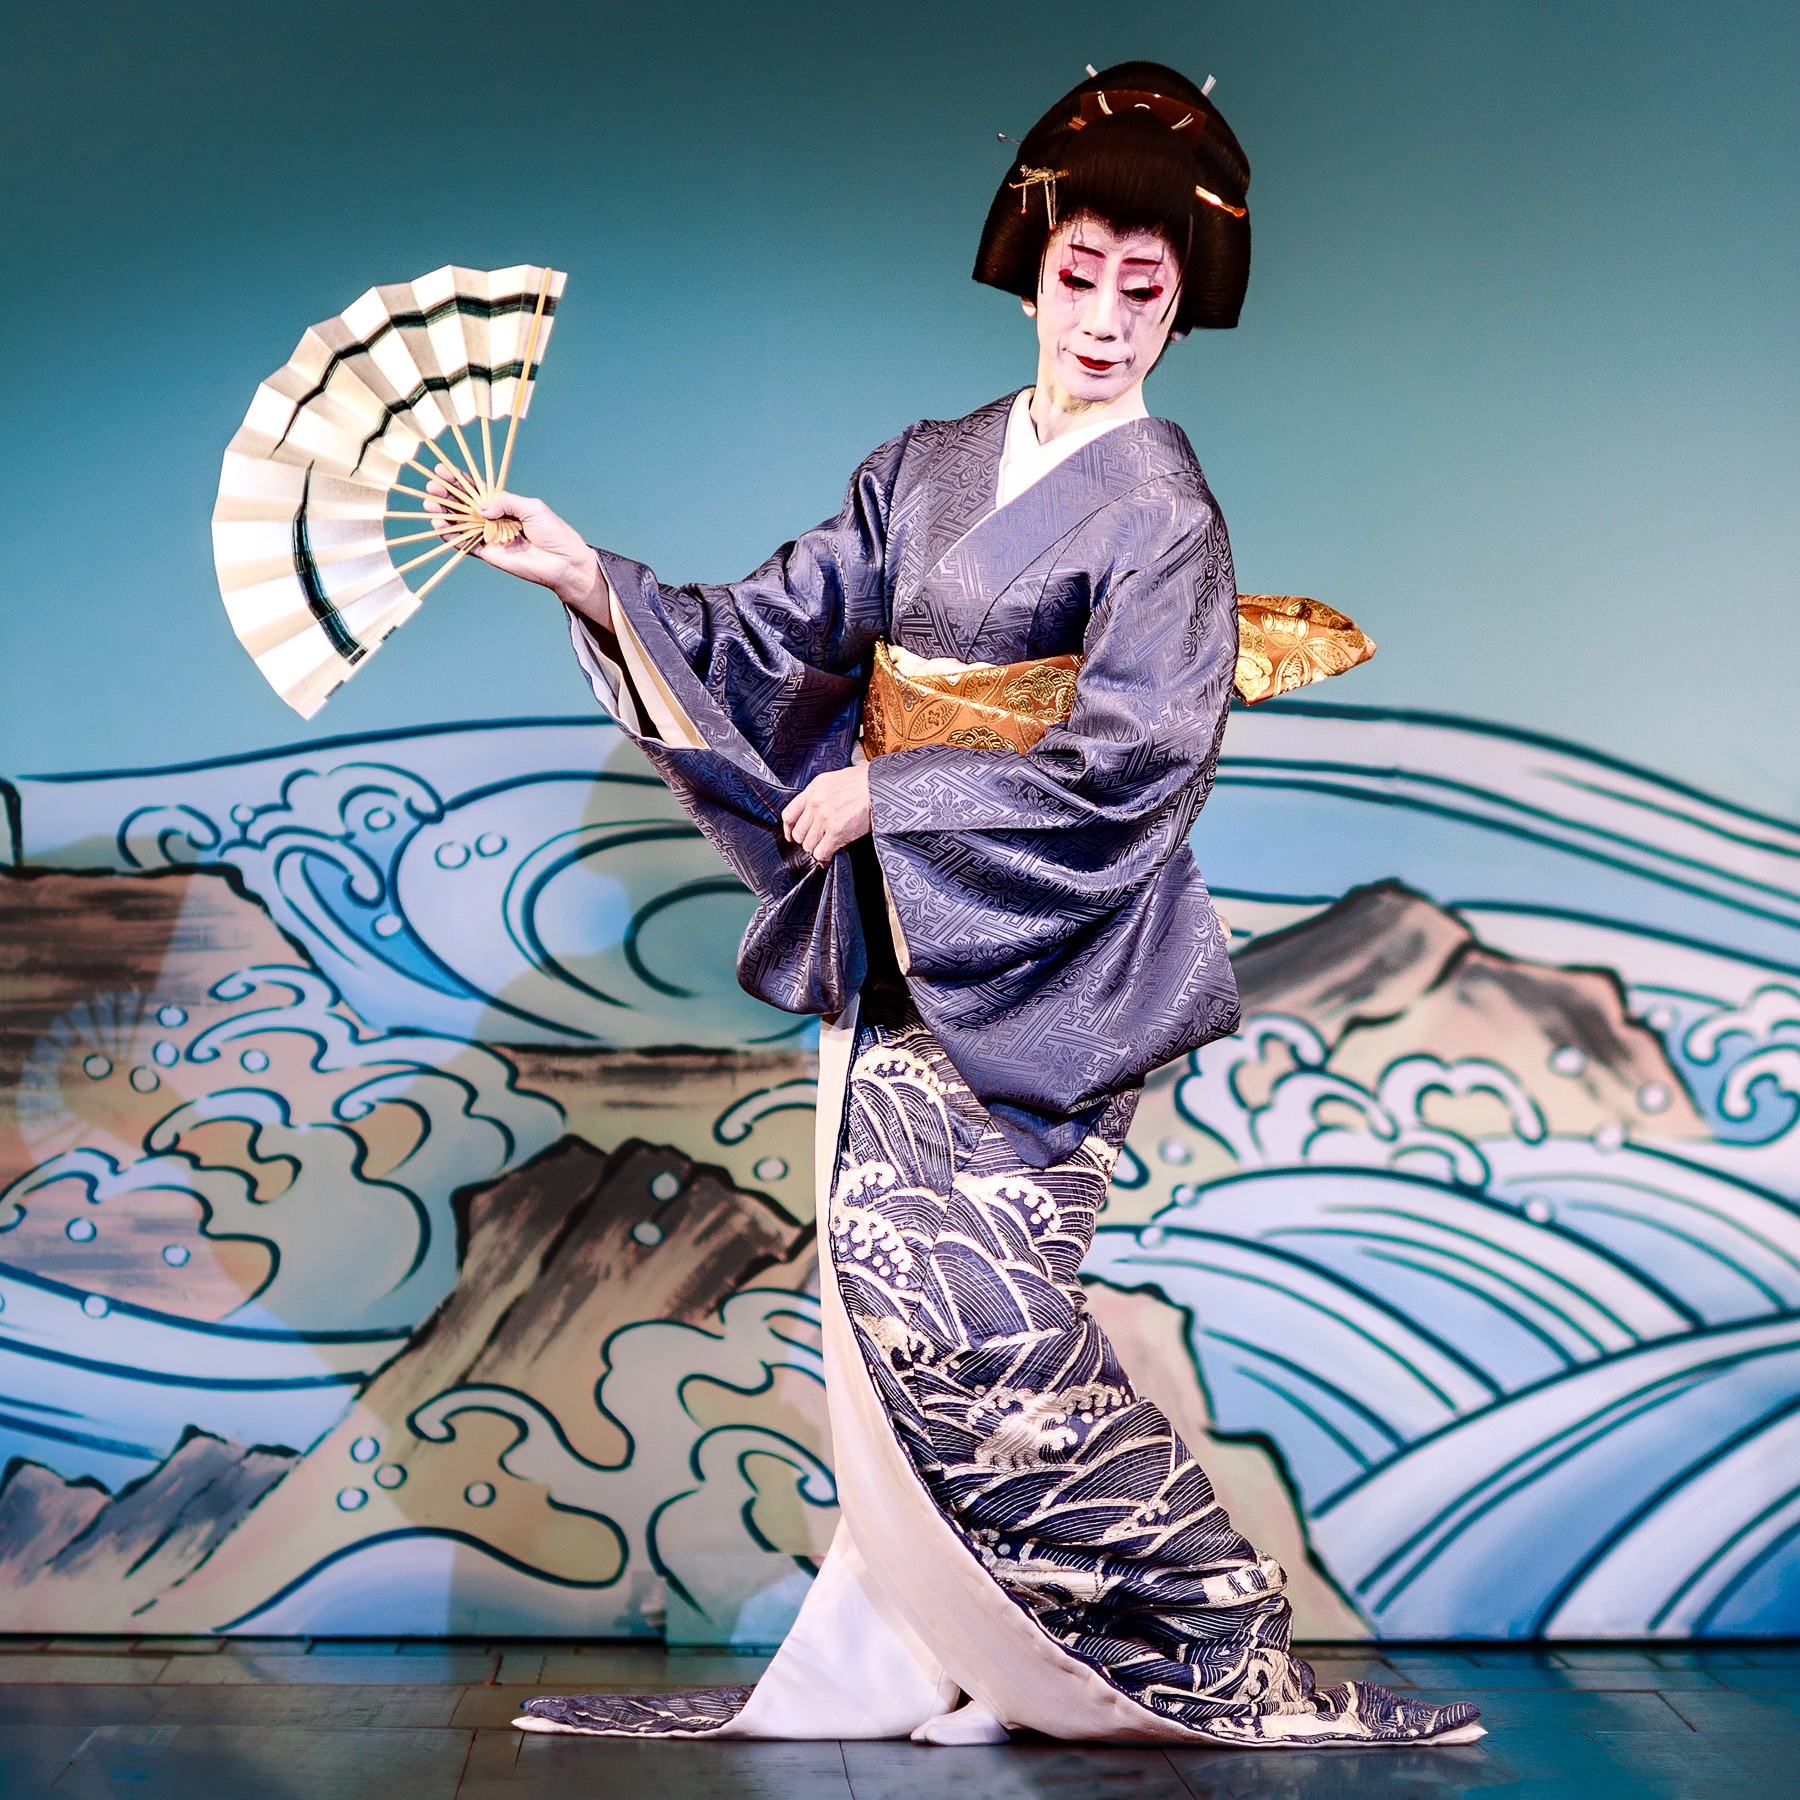 What are the best resources for writing a research paper on Geisha?